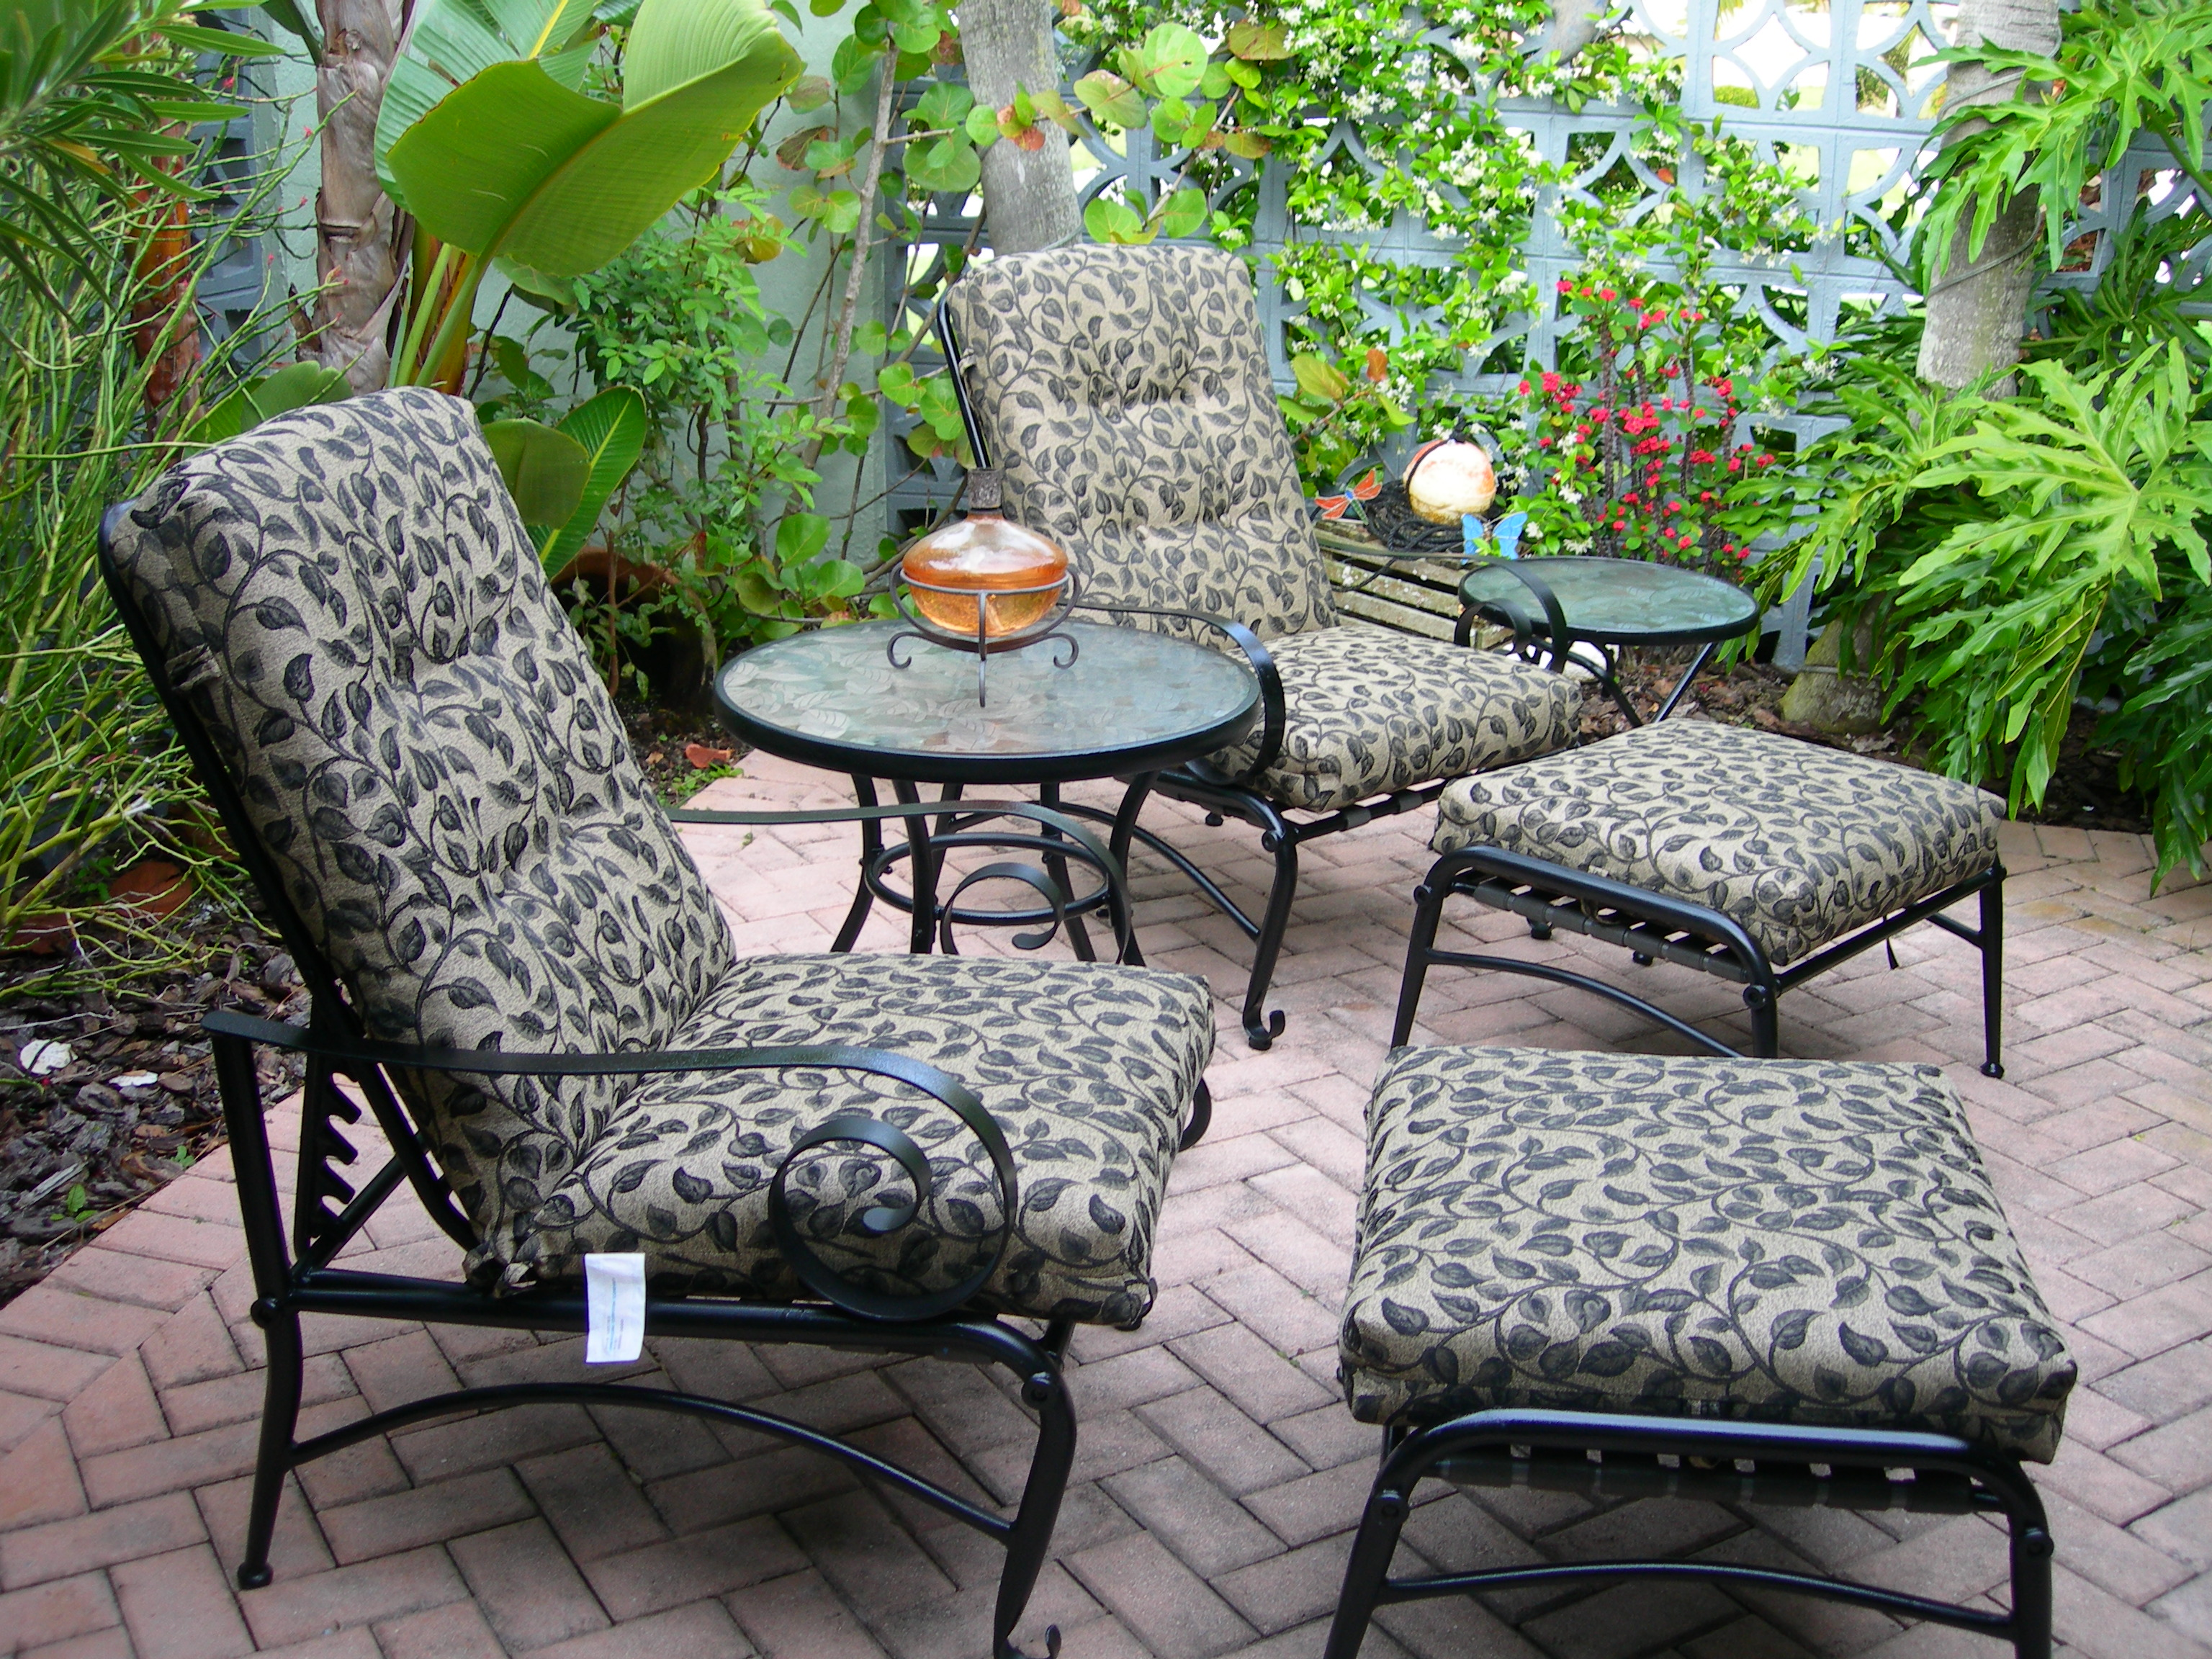 recipe: kmart martha stewart patio furniture replacement parts [3]